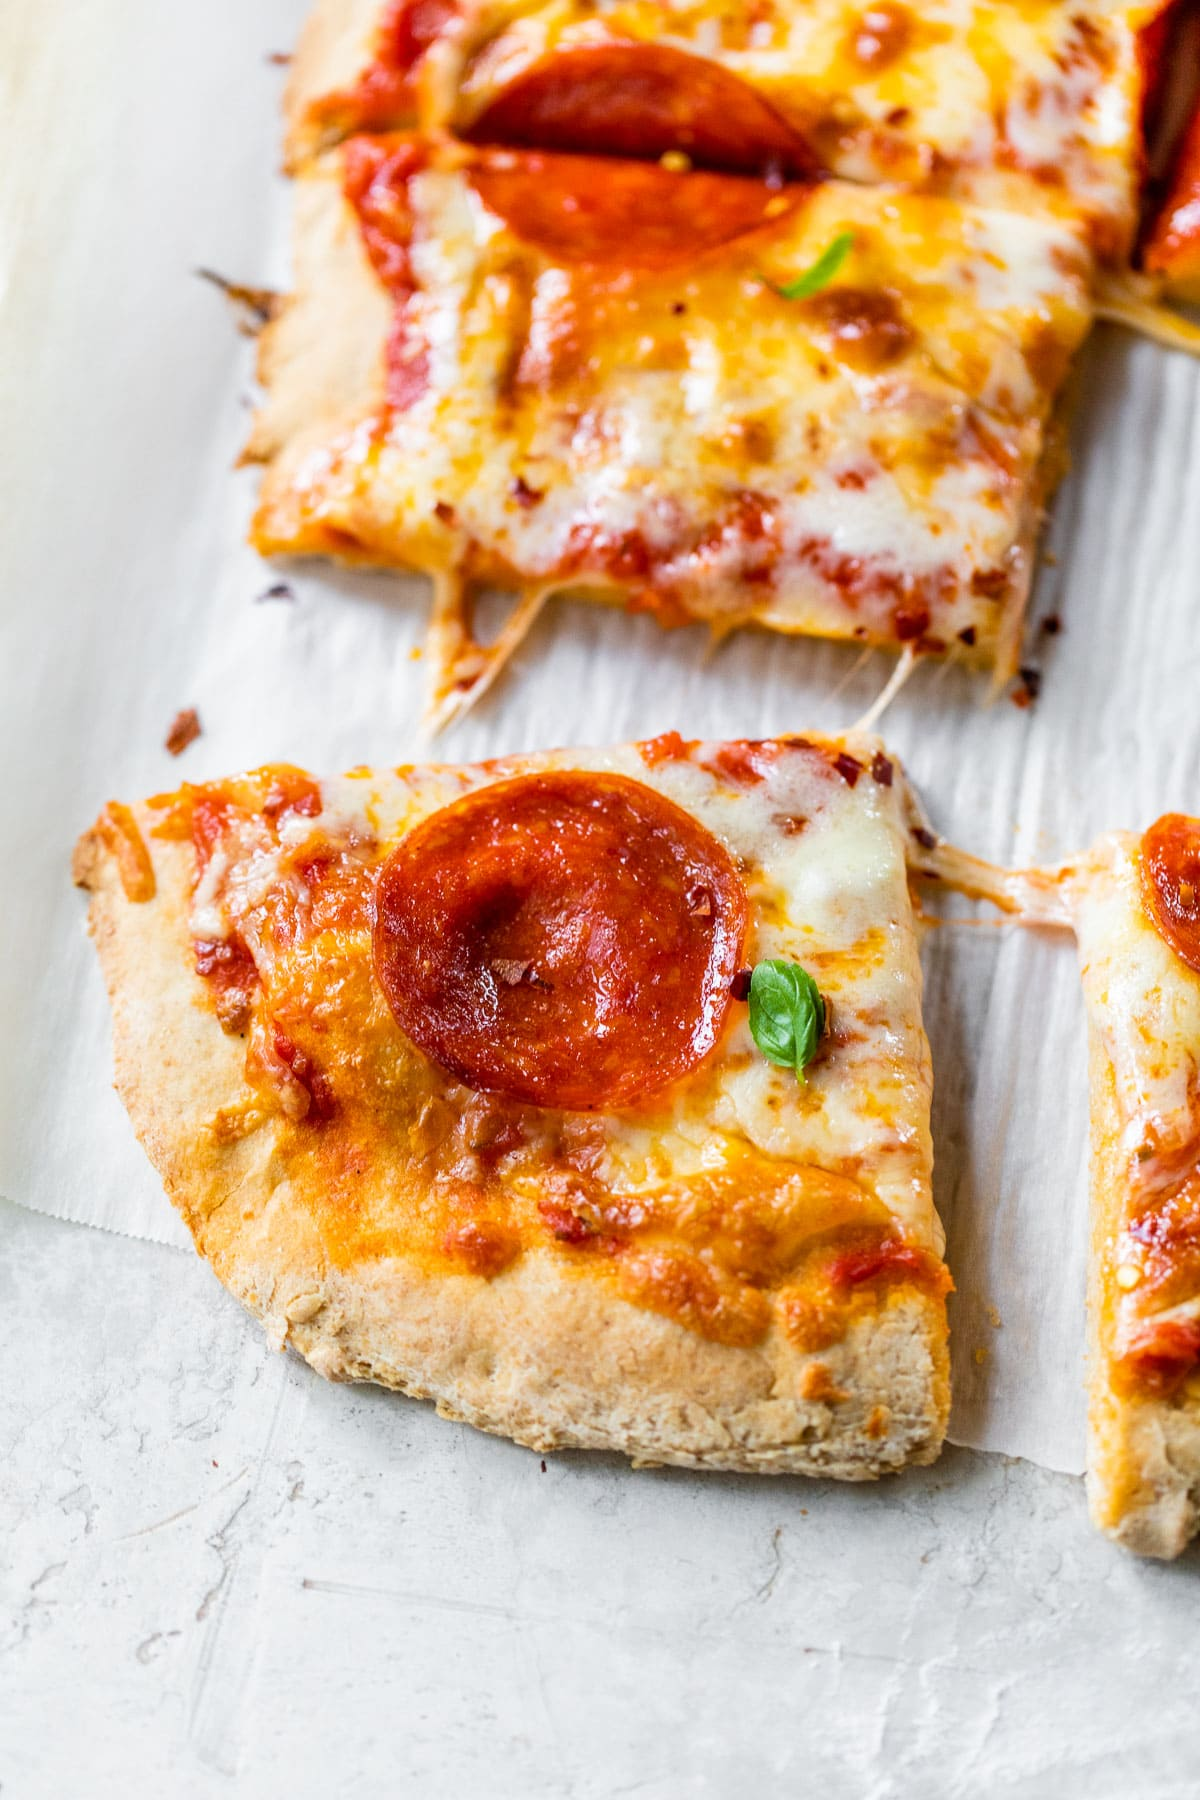 Slice of pepperoni pizza made with homemade whole wheat pizza dough